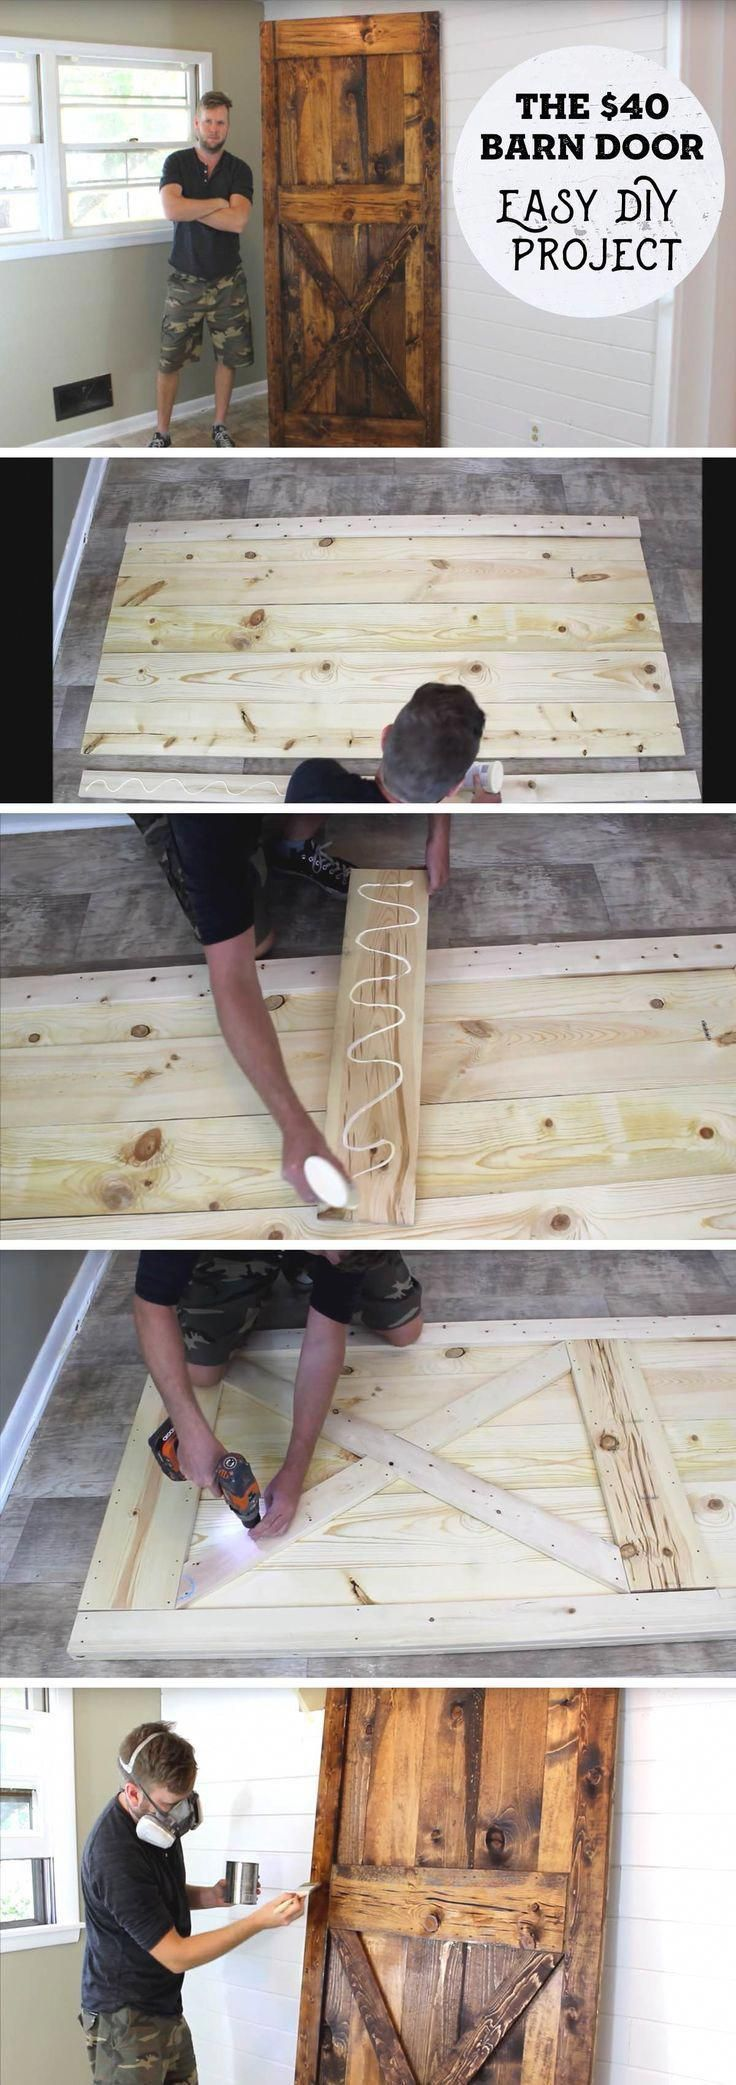 Here's a 40 Dollar DIY Barn Door All About Joining A Wooden Cut List Together! is part of Heres A  Dollar Diy Barn Door All About Joining A Wooden - A few pieces of lumber come together to end up in an awesome DIY Barn Door costing no more than 40 dollars